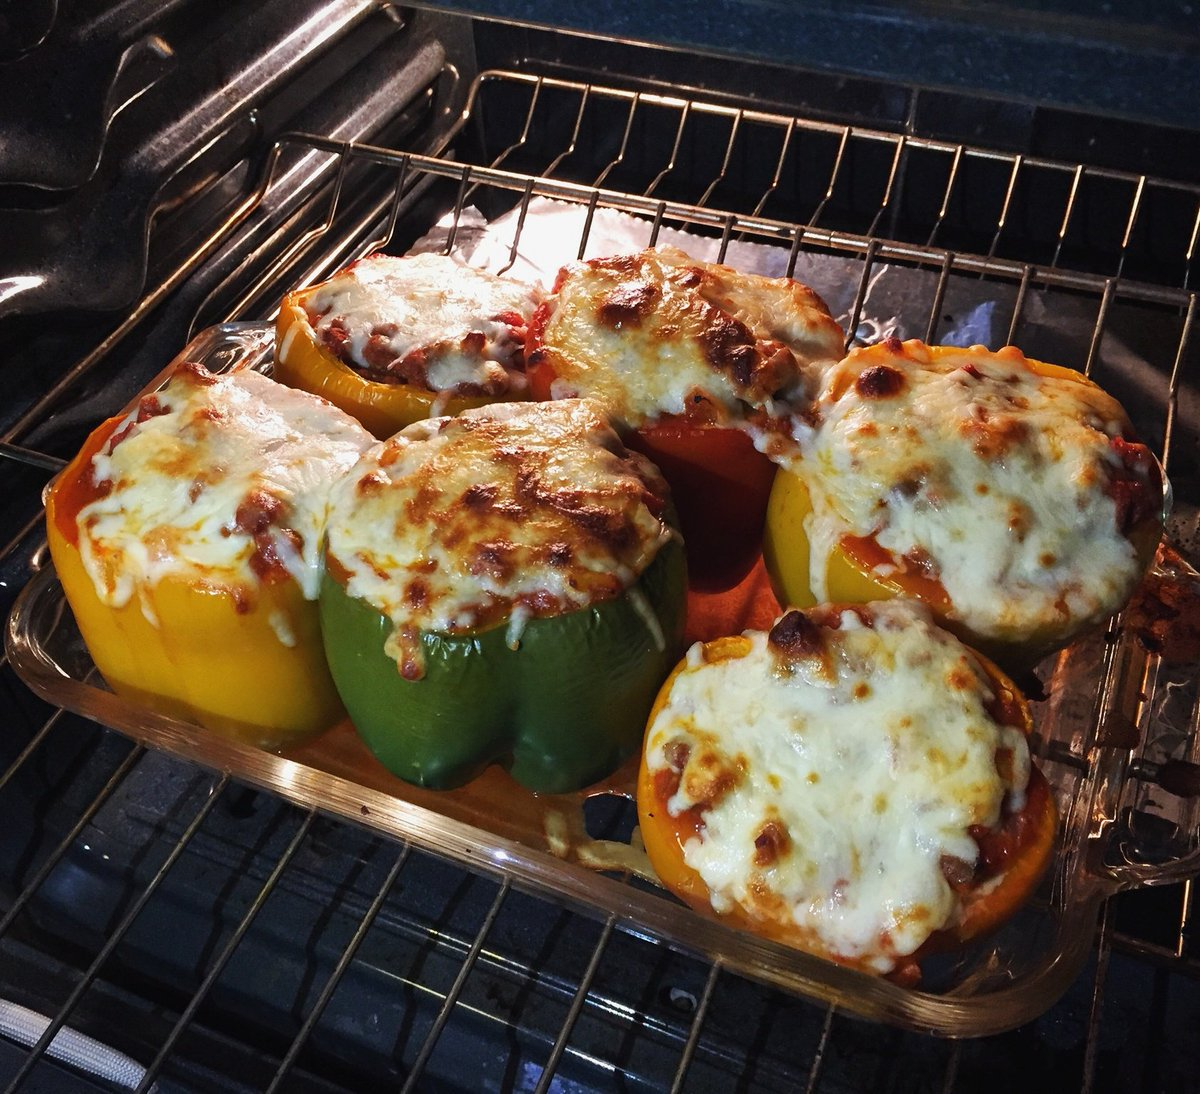 The Restaurant Zack On Twitter Stuffed Bell Peppers What